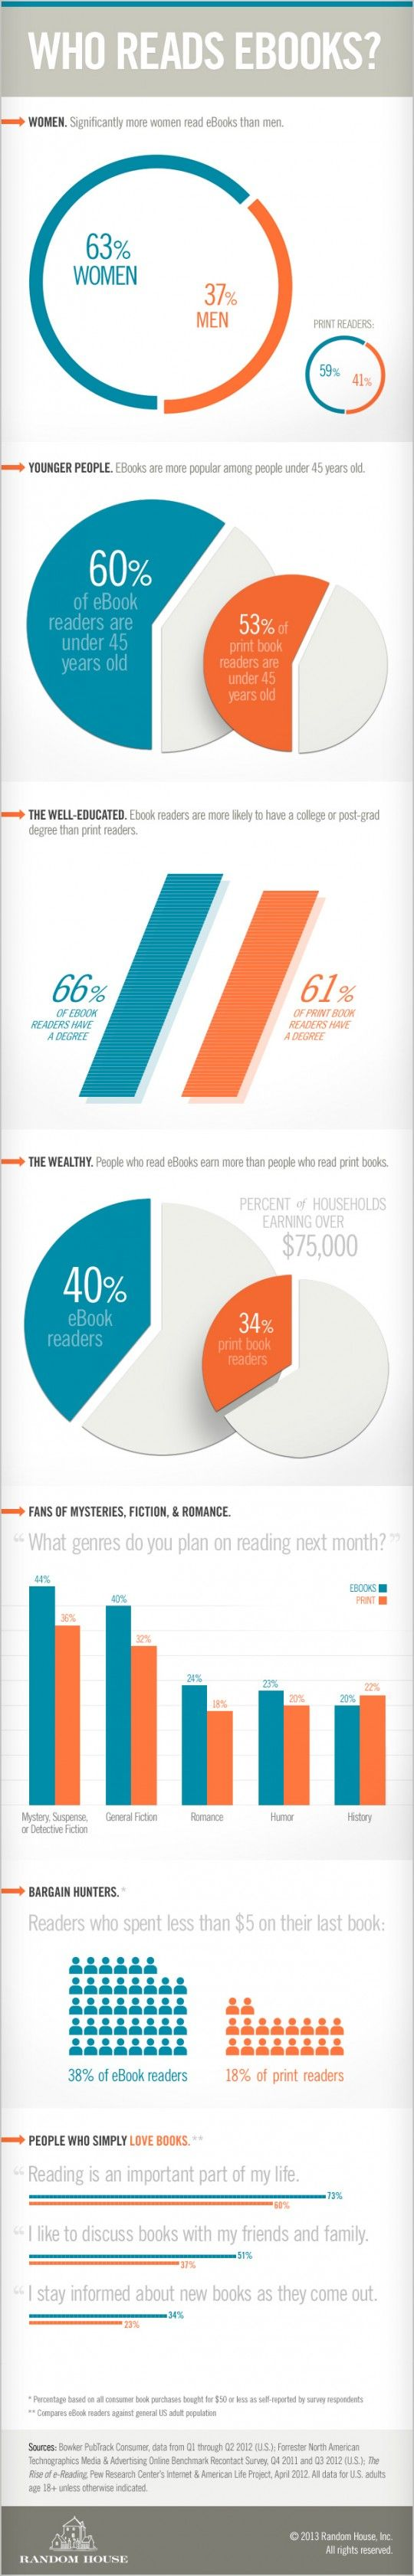 Who Reads Ebooks? (infographic)